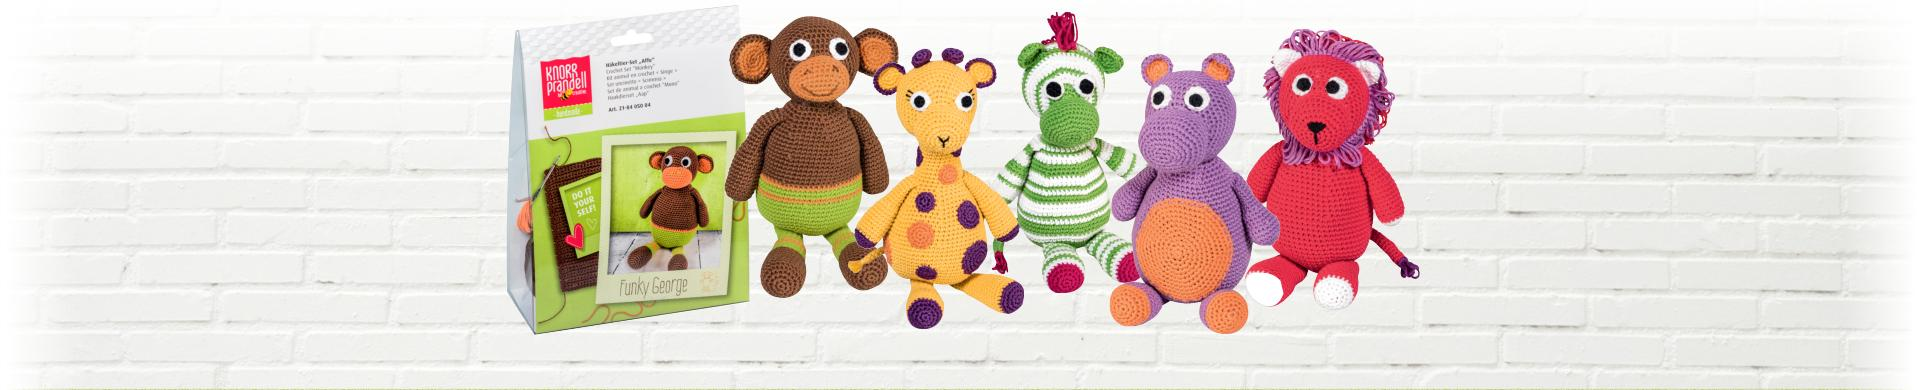 Soft Toy Crochet Kits